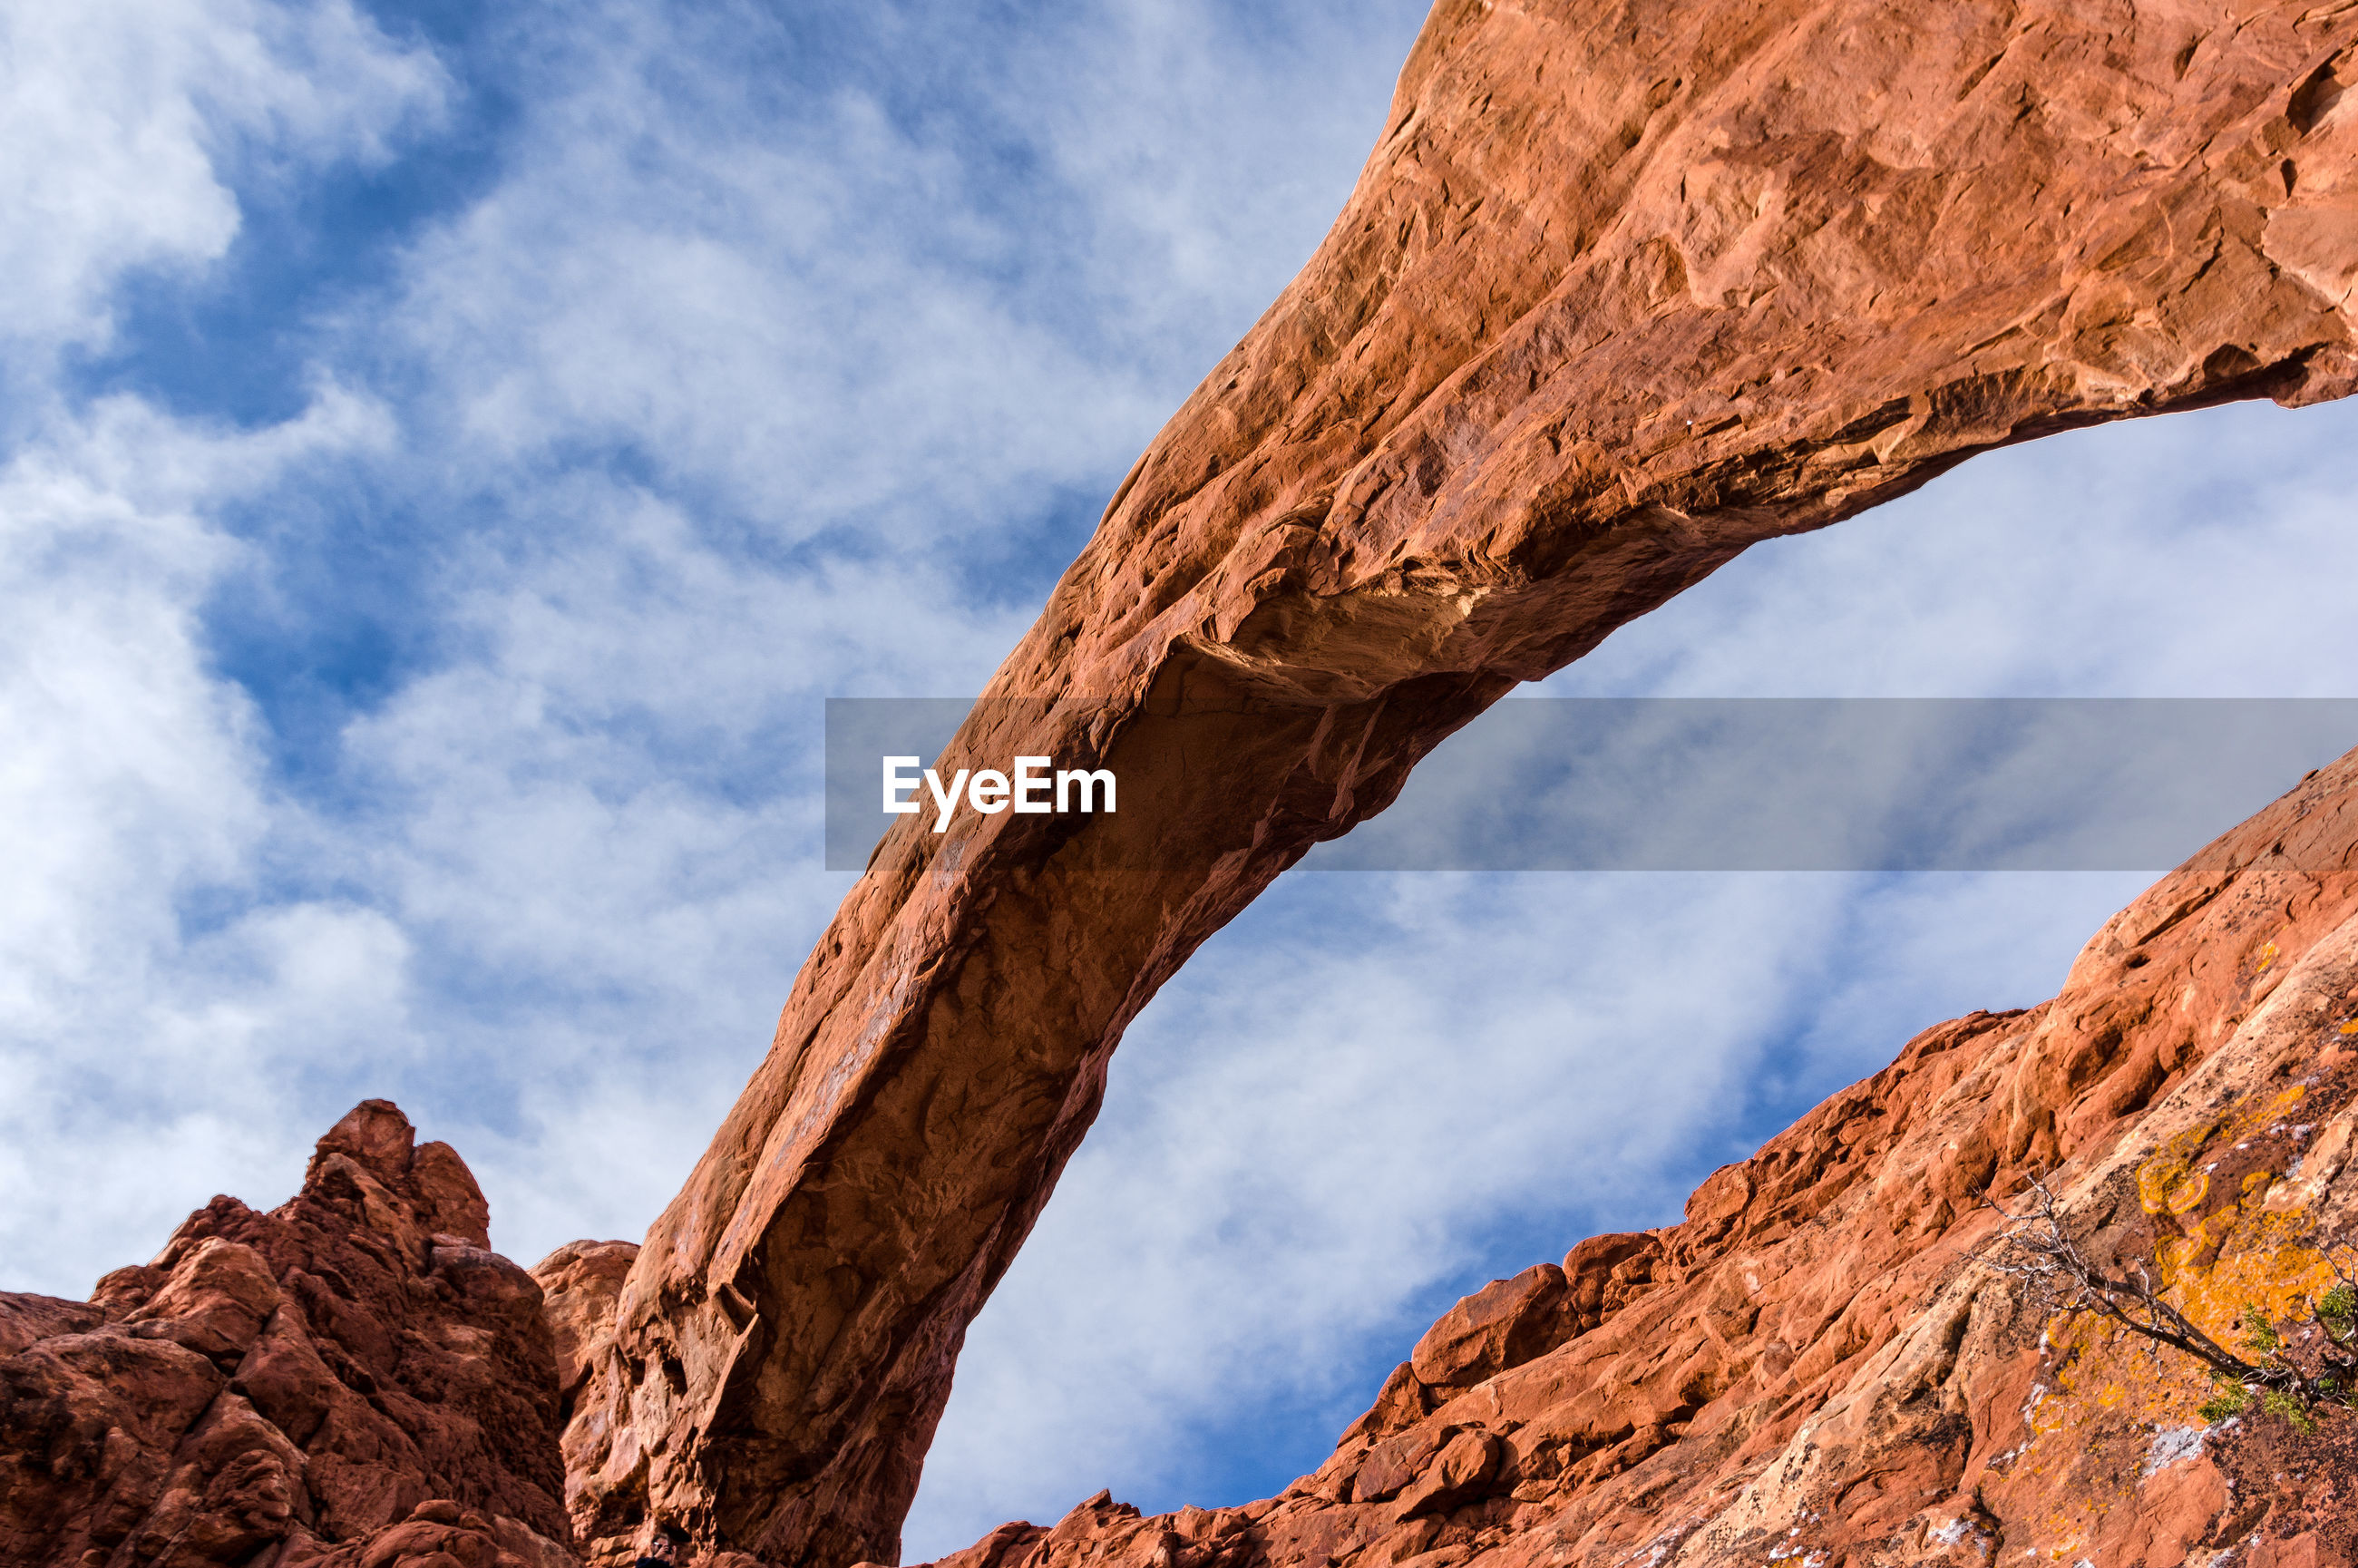 Low angle view of rock formations at arches national park against cloudy sky